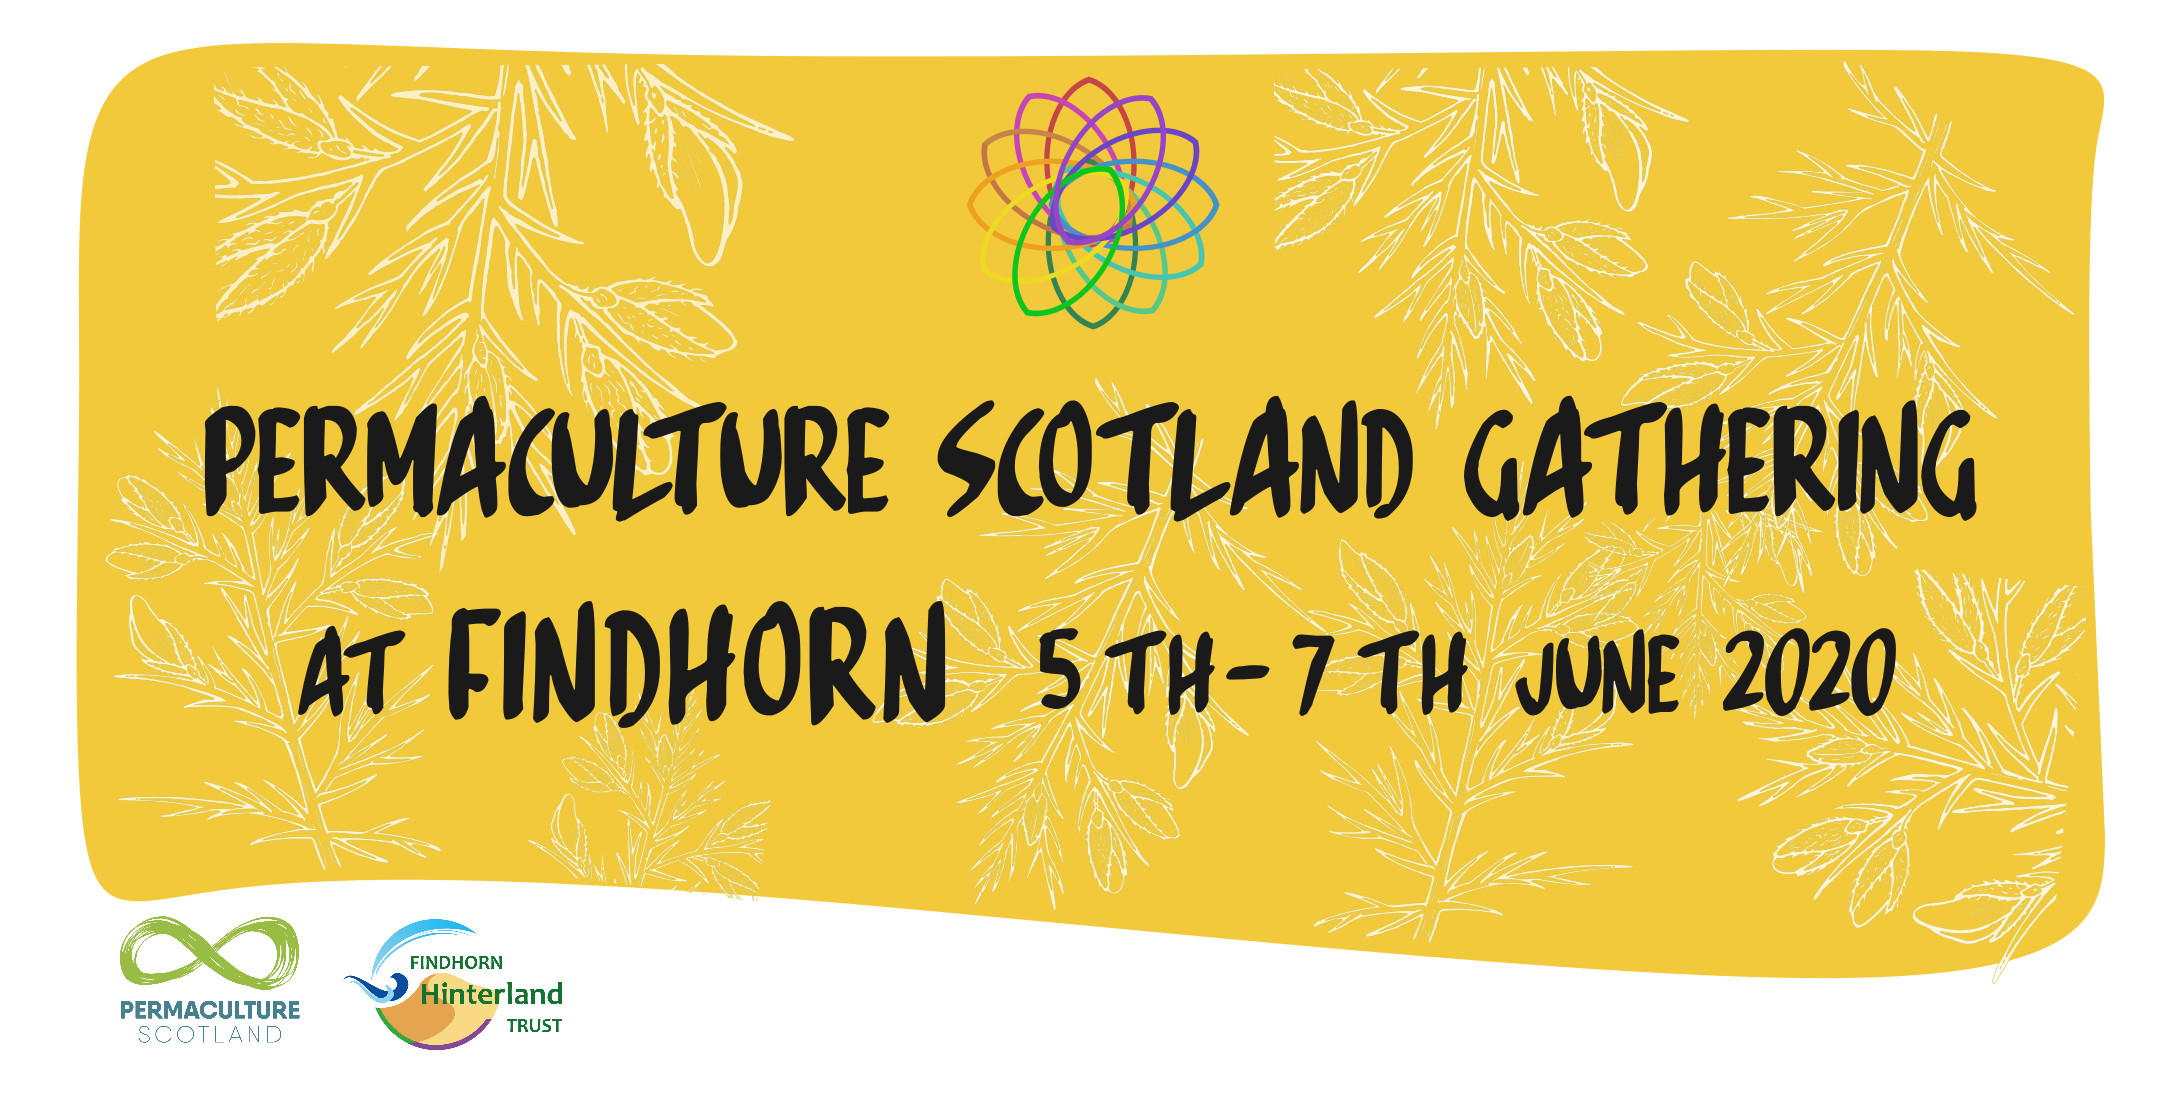 Permaculture Scotland Gathering 2020 @ Findhorn